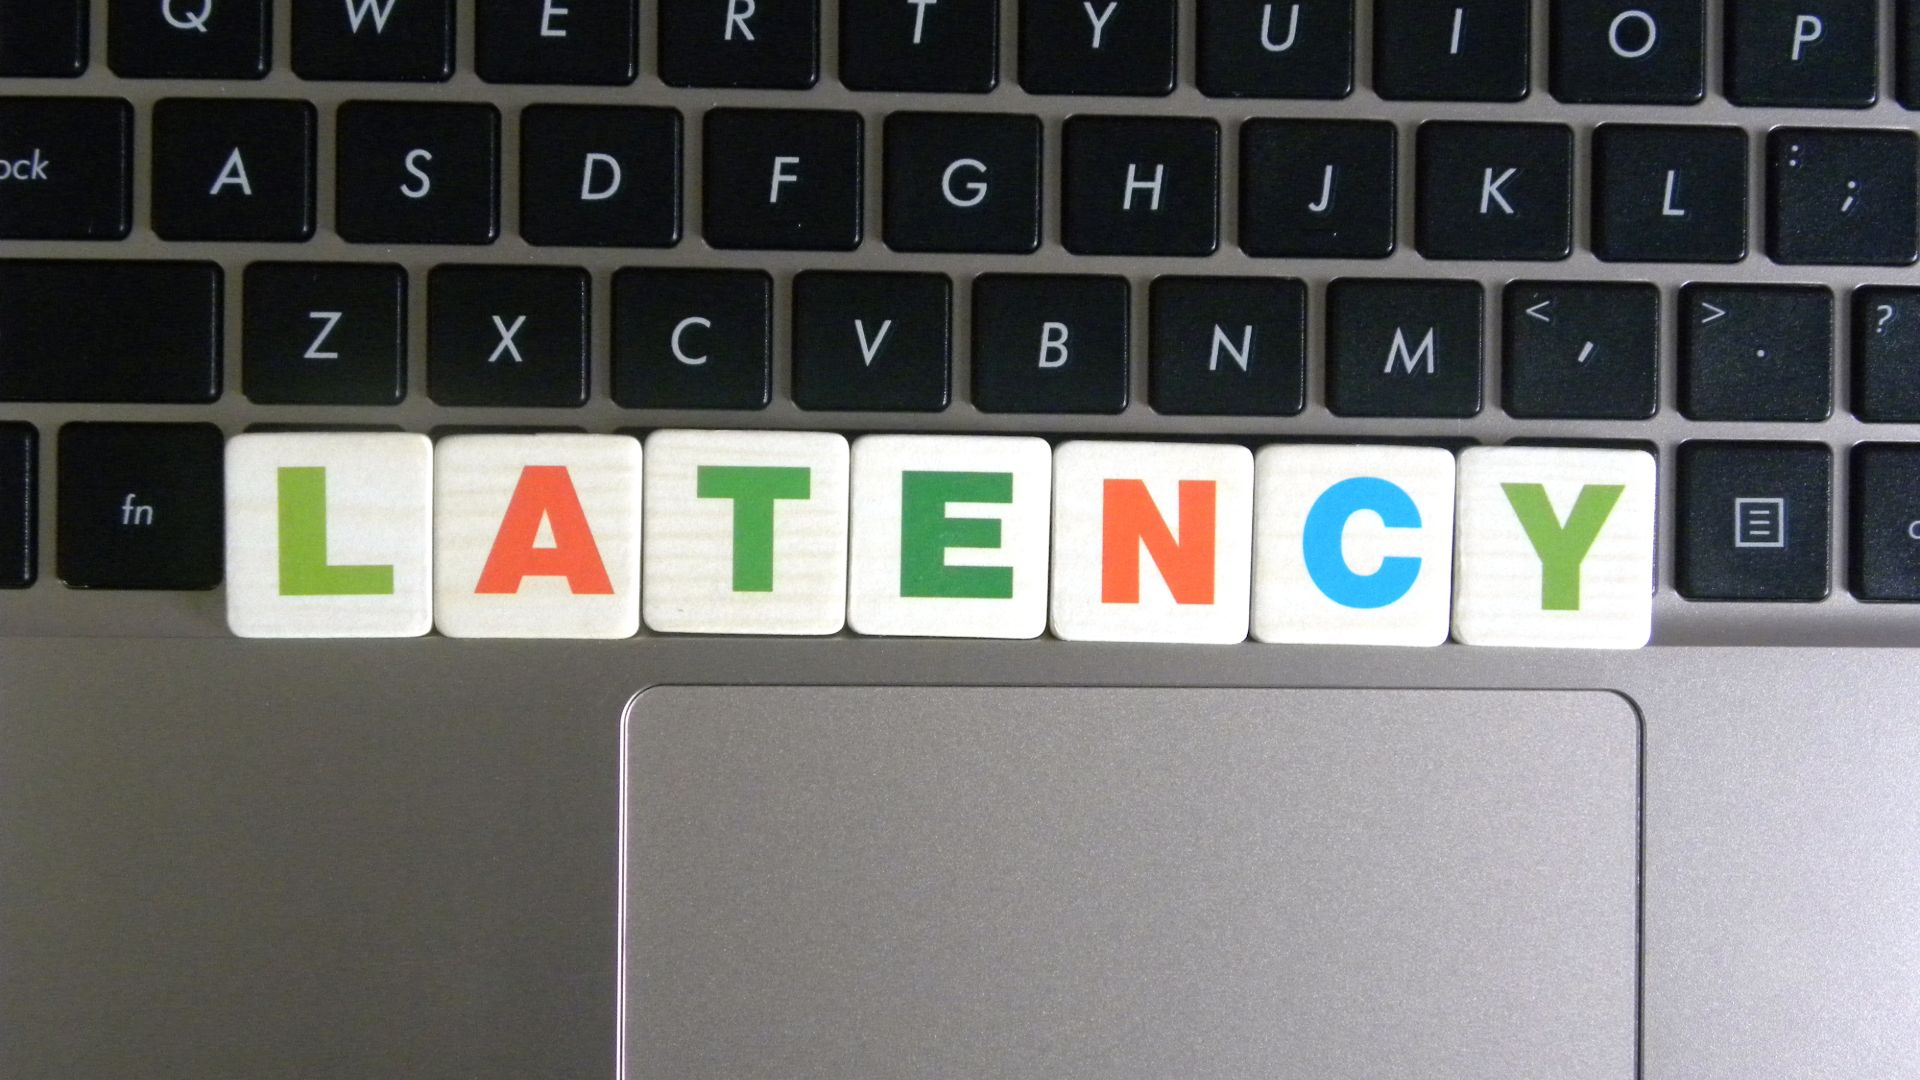 What Does Latency Mean?